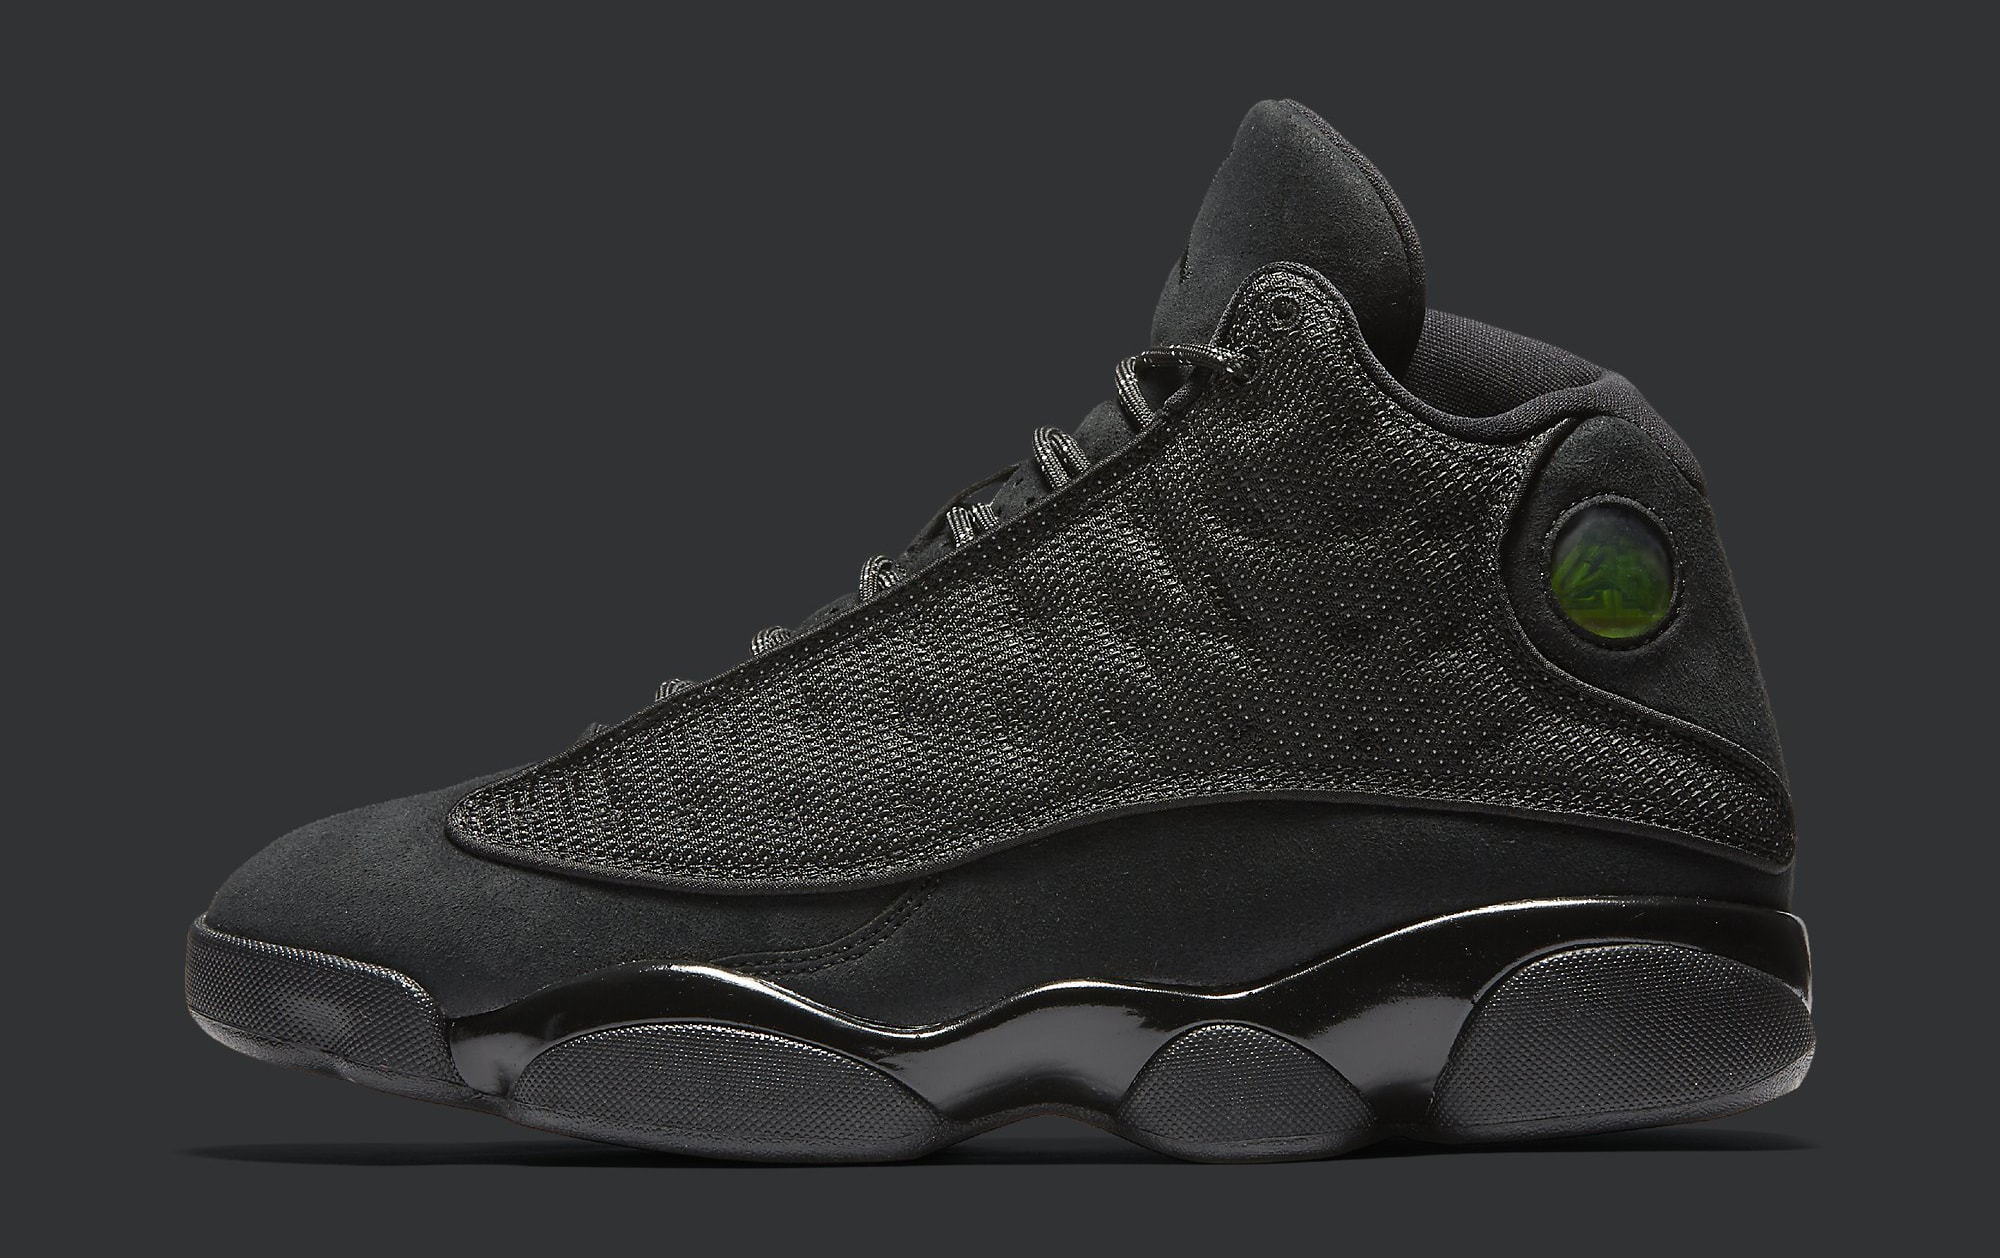 09614f9c871 Image via Nike Black Cat Air Jordan 13 414571-011 Profile